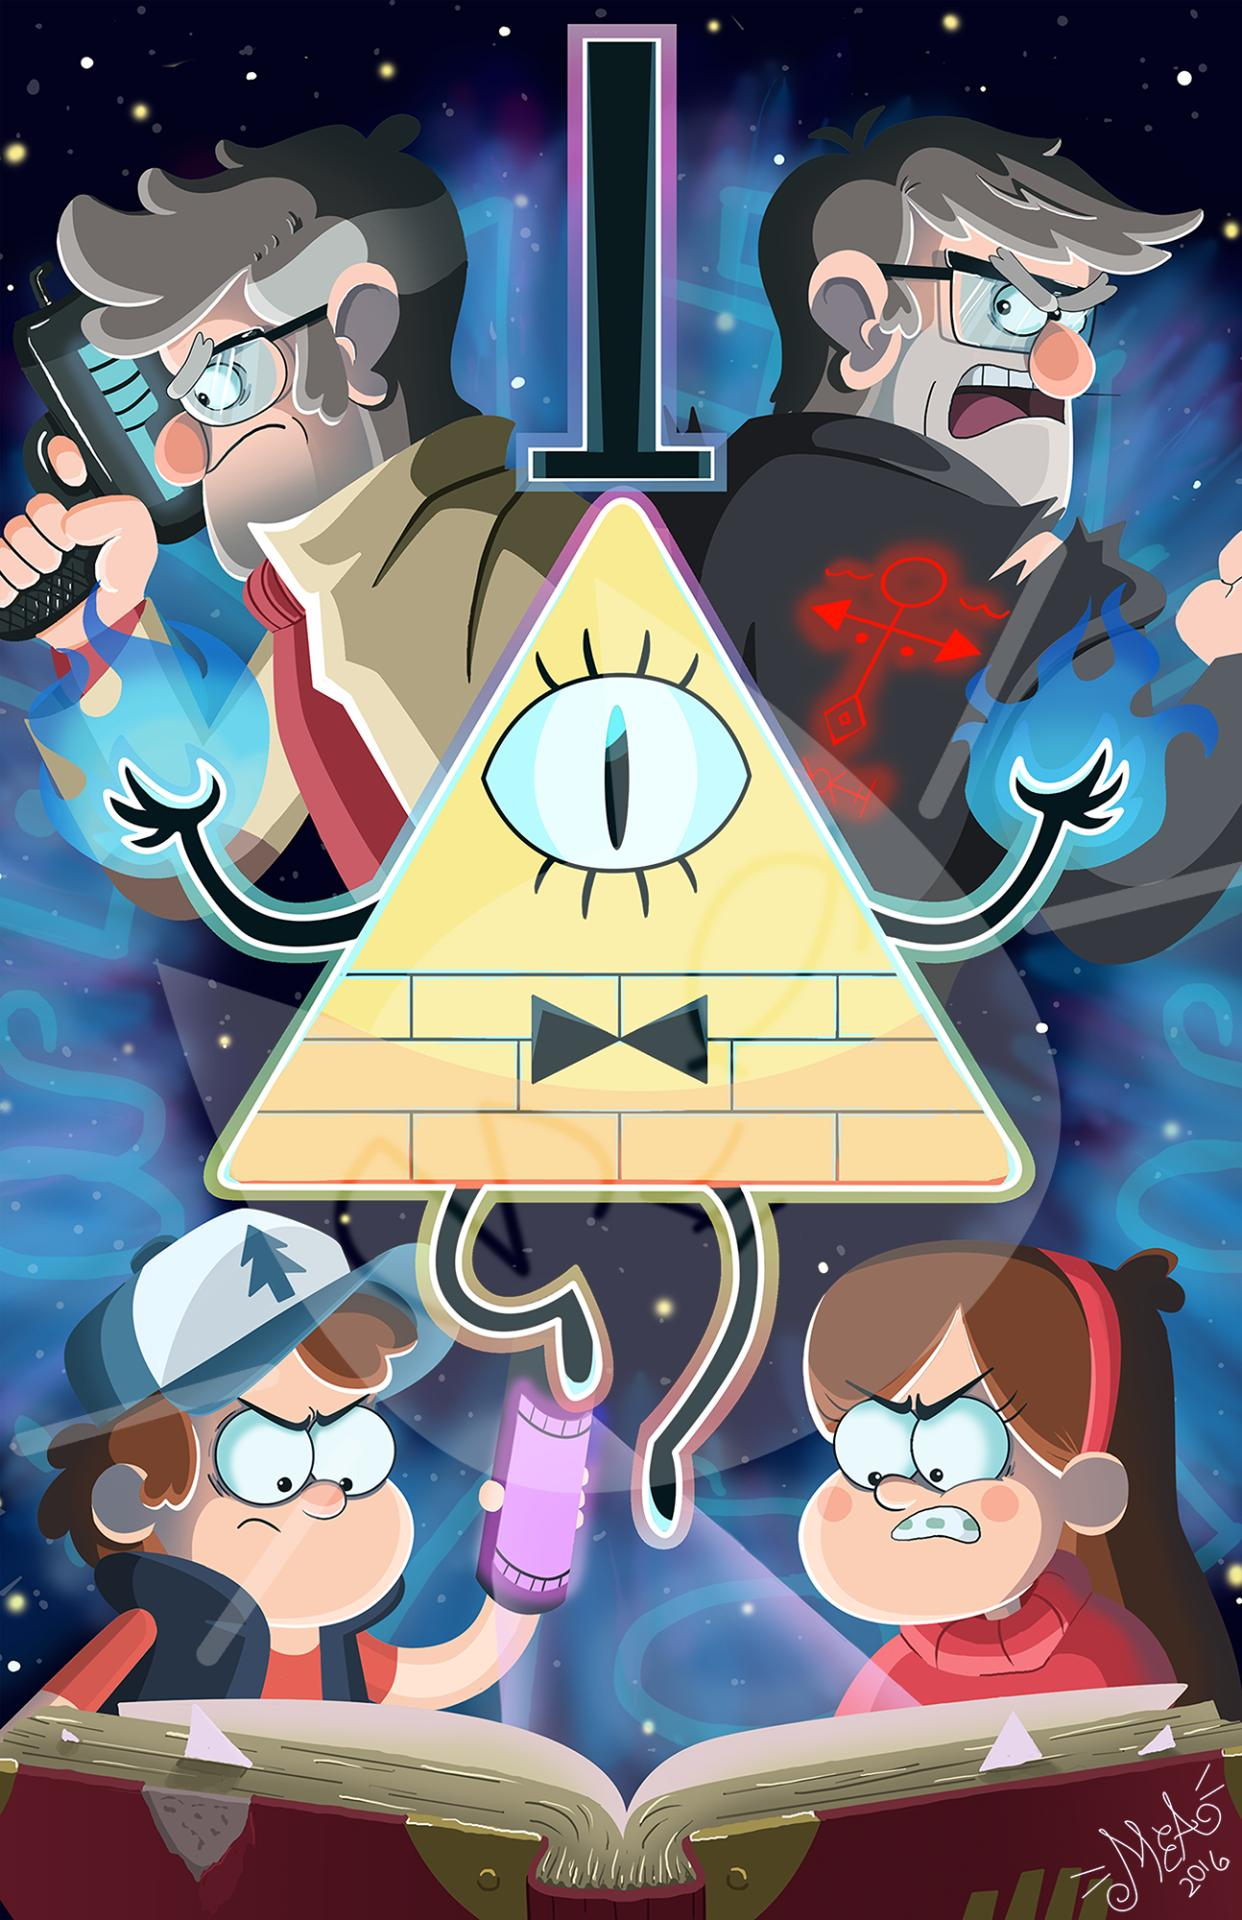 1242x1920 gravity falls bill cipher wallpaper 4k for Android - APK ...